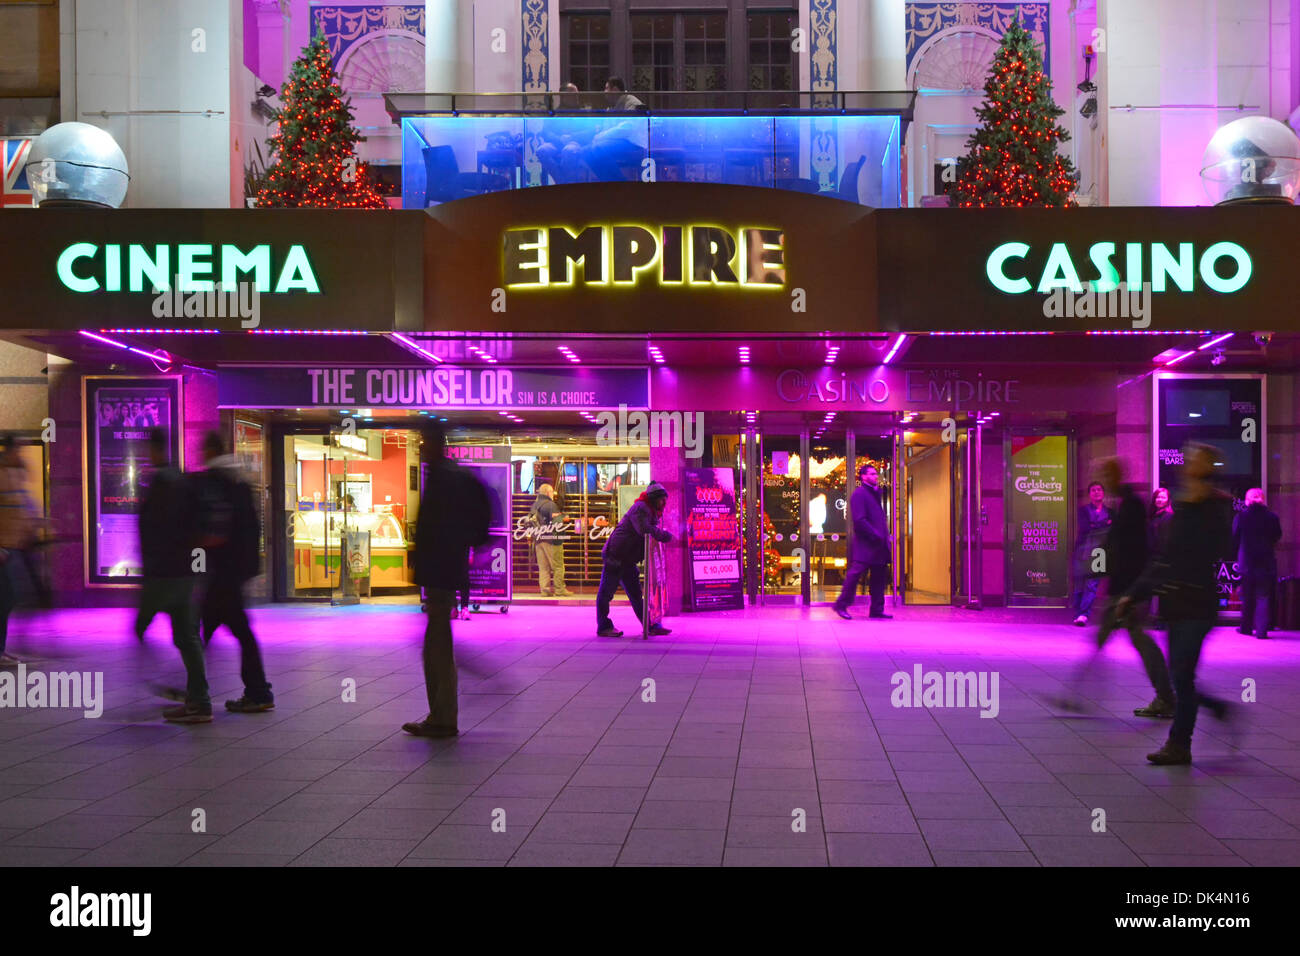 Empire Leicester Square cinema and casino premises with coloured floodlighting - Stock Image